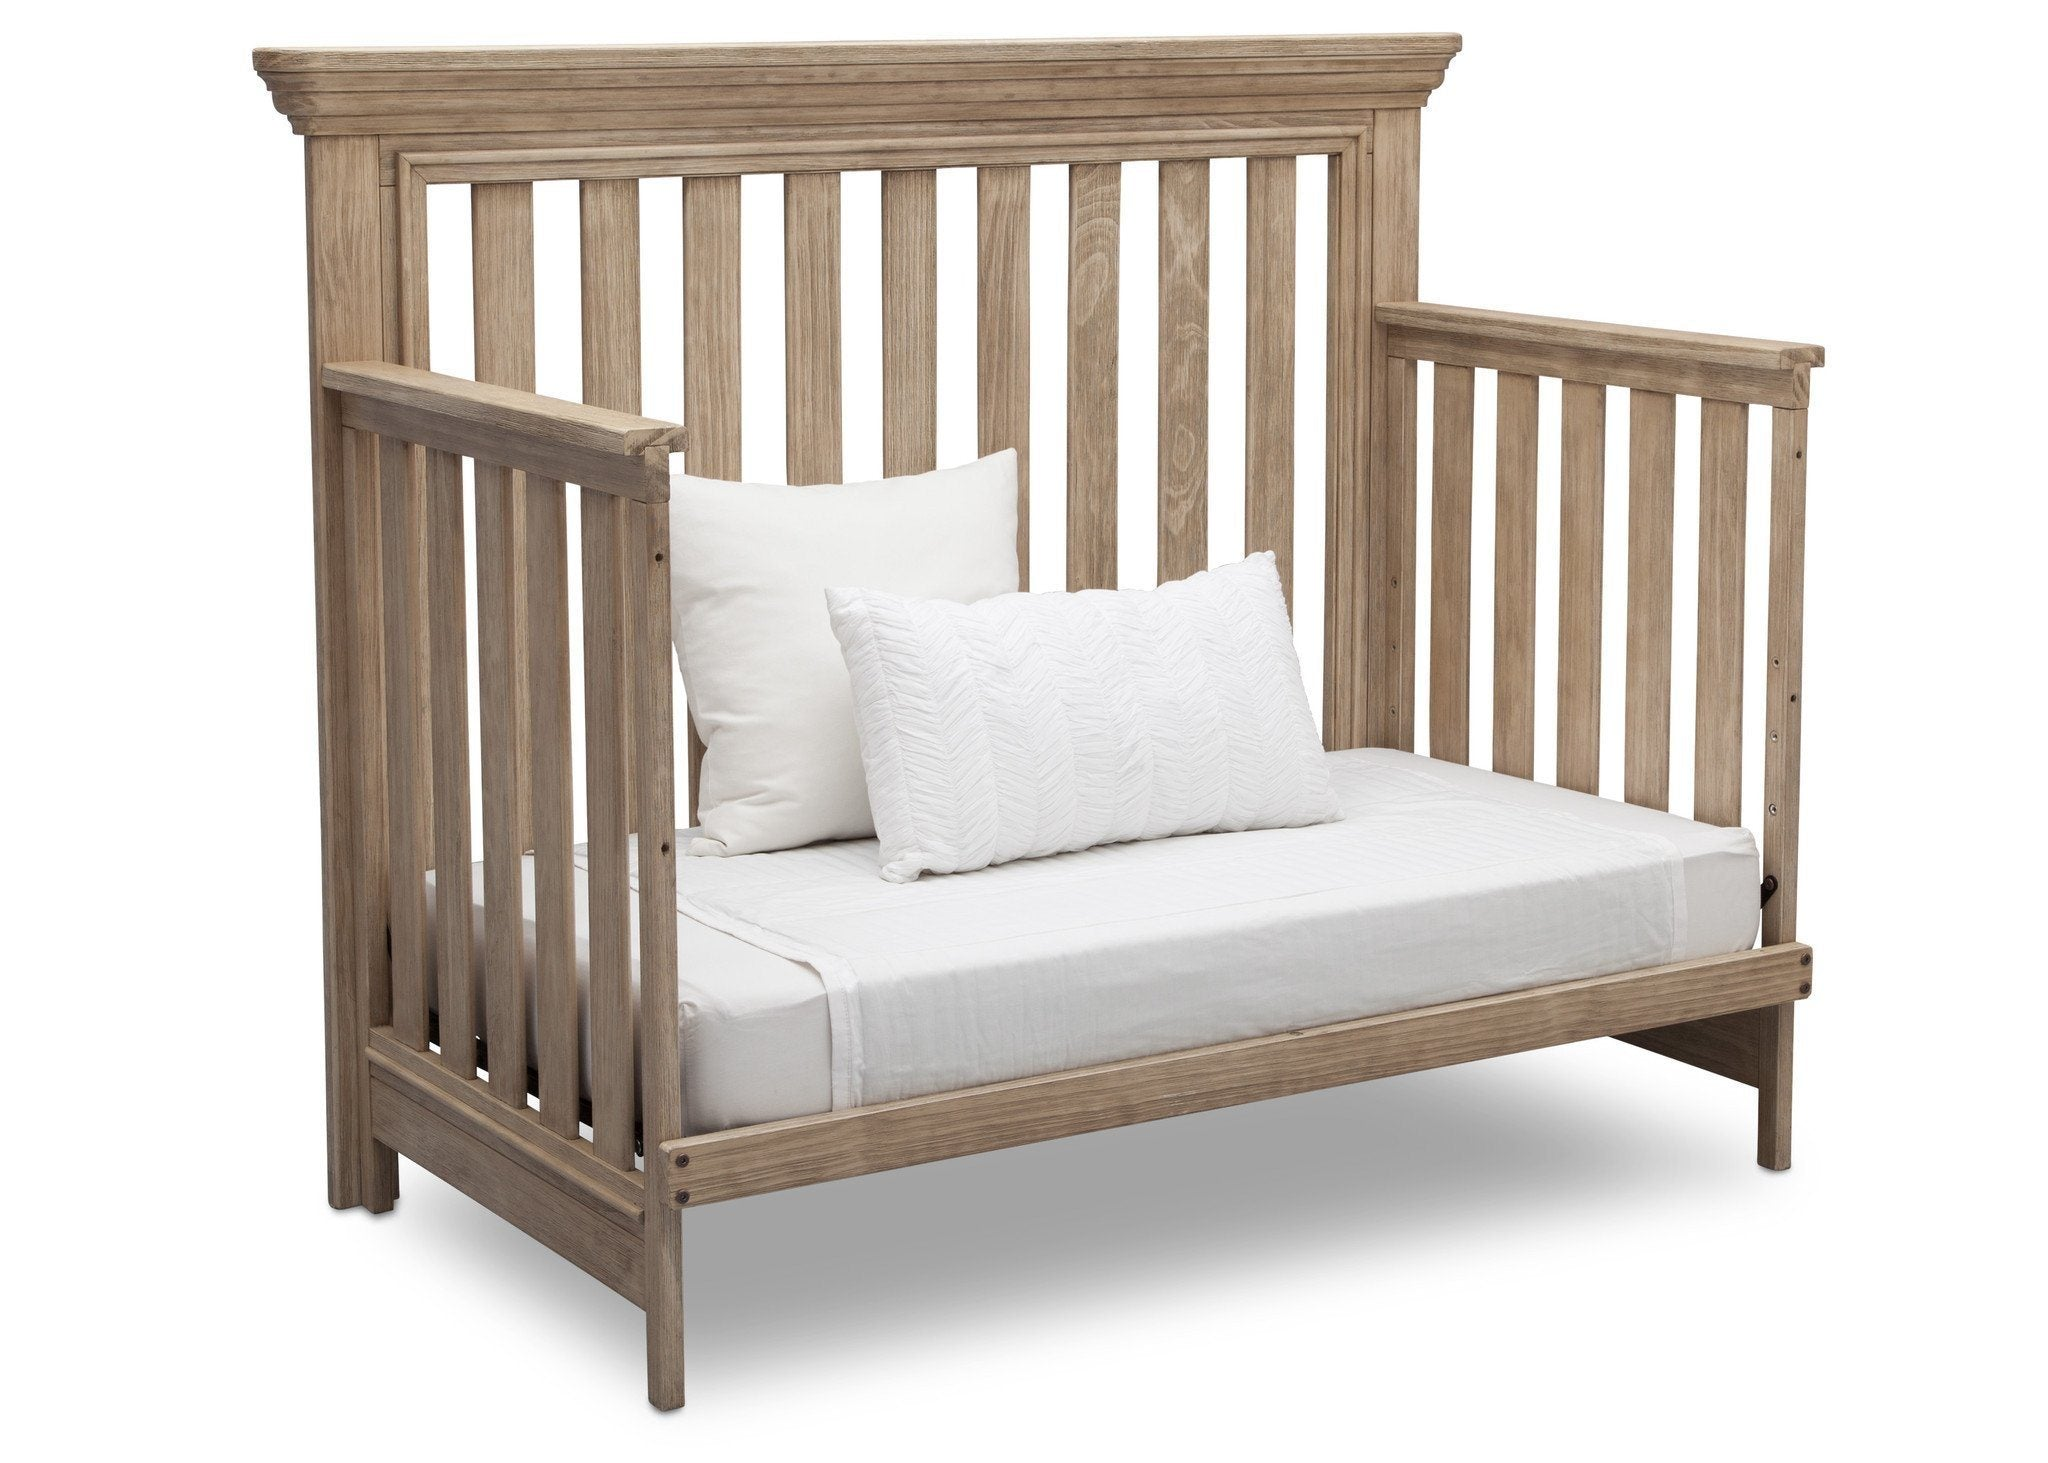 Serta Rustic Driftwood (112) Langley 4-in-1 Crib Right View Day Bed Conversion b4b